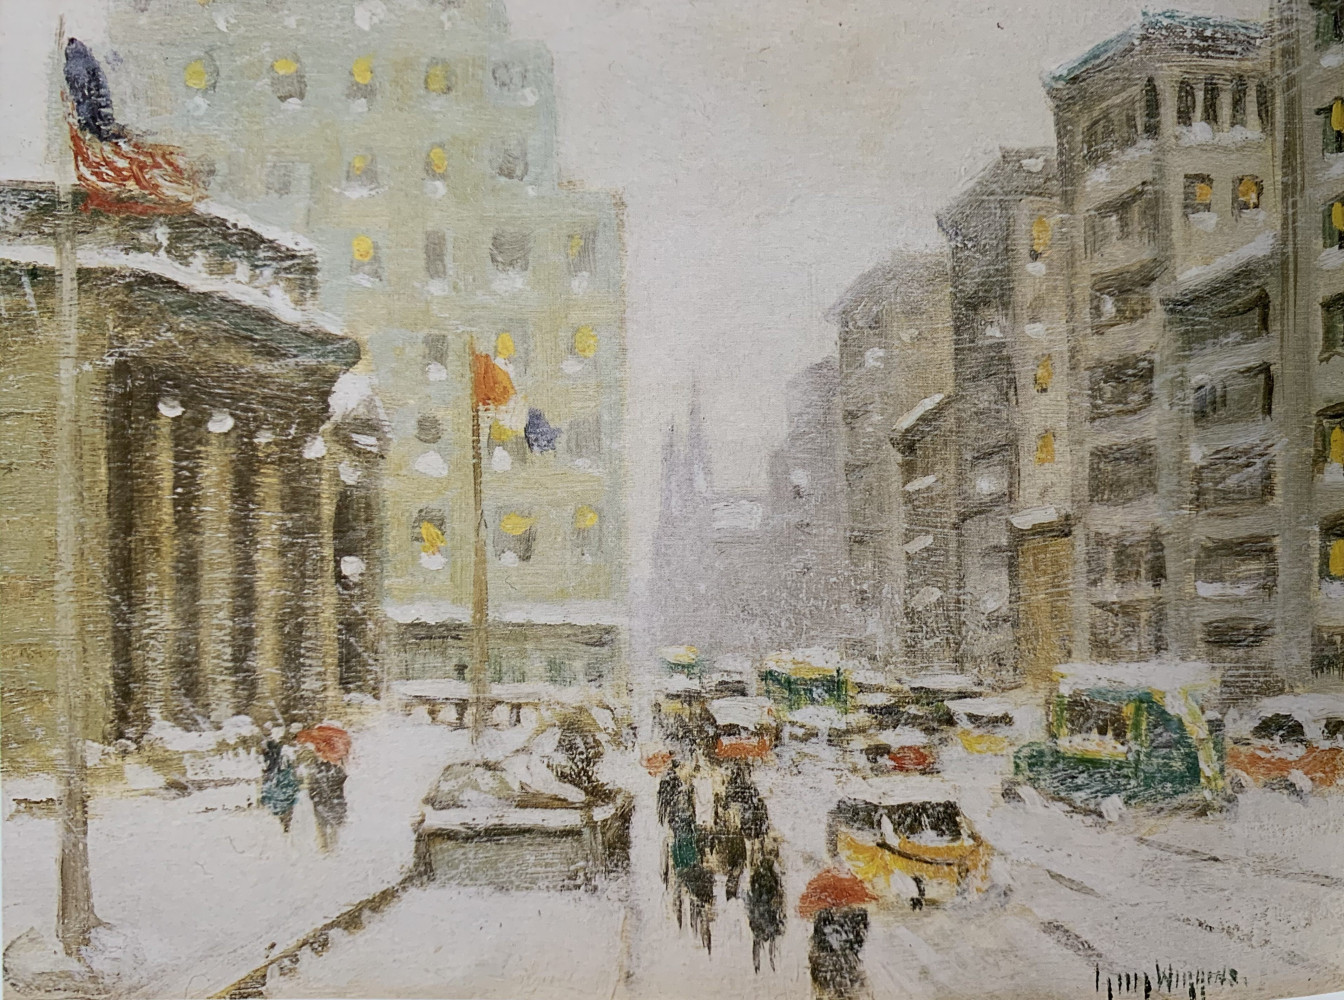 Fifth Avenue Winter at Library by Guy Carleton Wiggins